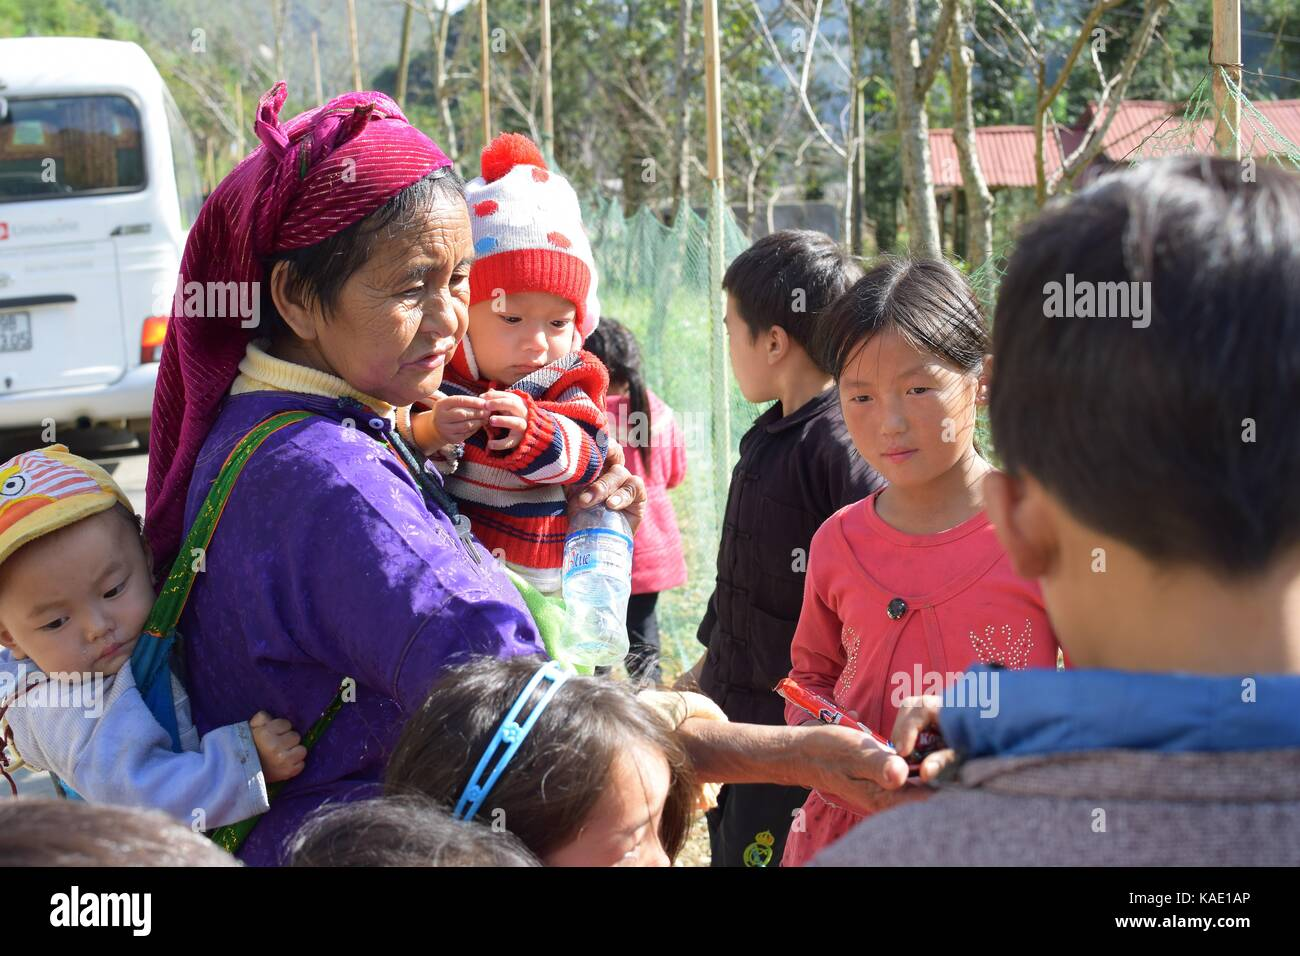 Ha Giang, Vietnam - November 08, 2018: Unidentified group of children wearing Hmong traditional new year clothe, Stock Photo